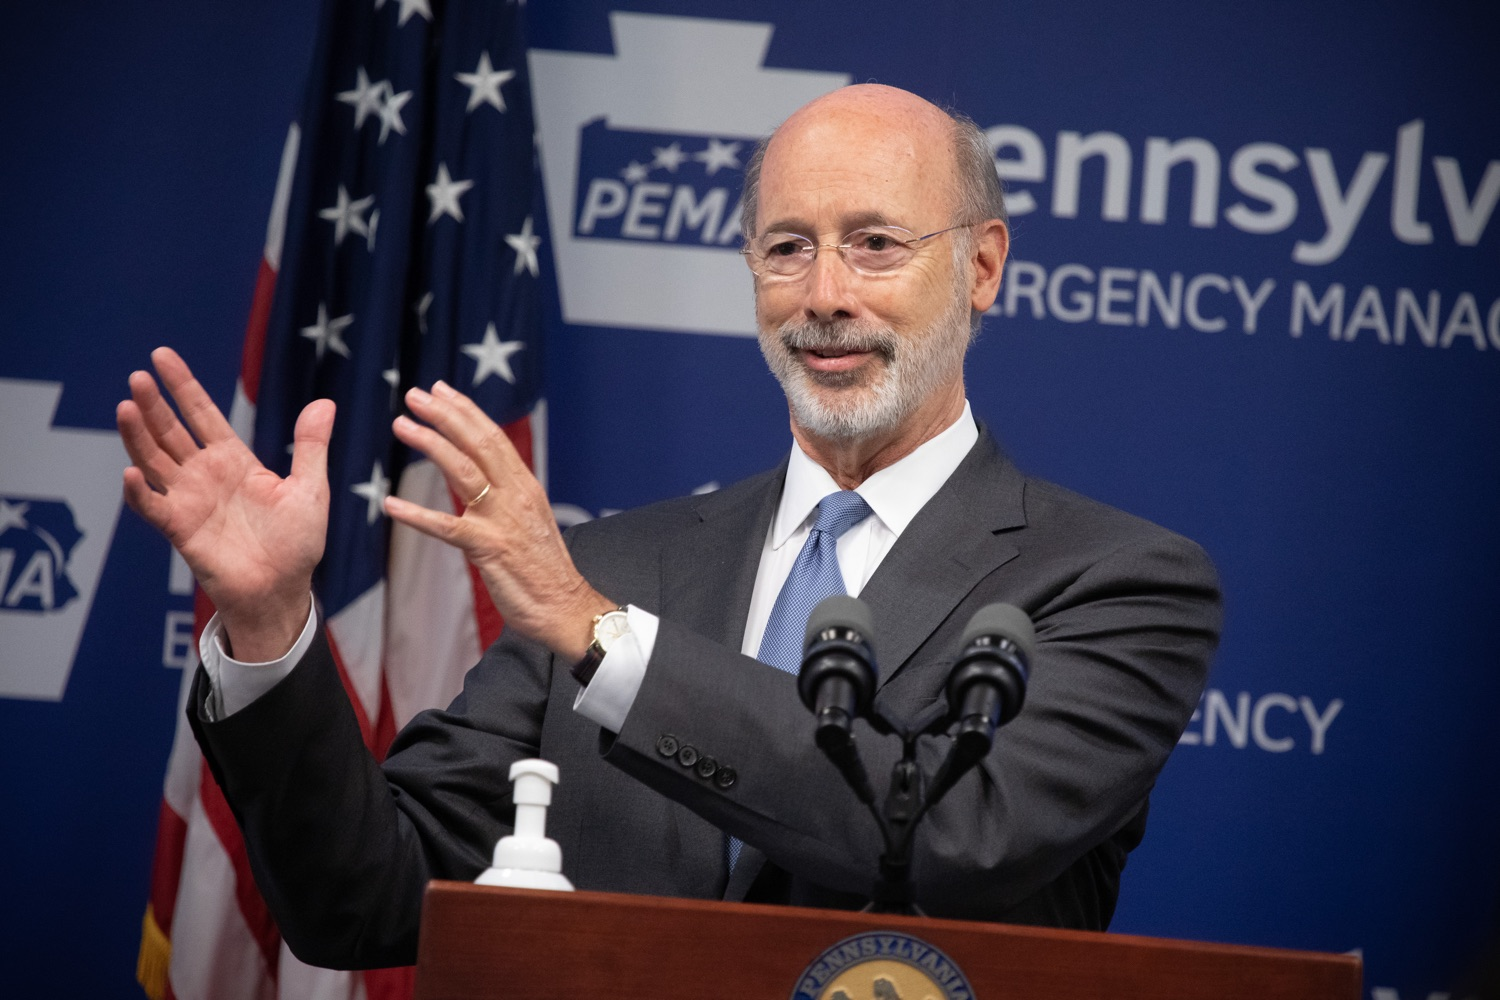 "<a href=""https://filesource.wostreaming.net/commonwealthofpa/photo/18088_gov_covid_update_dz_0001.jpg"" target=""_blank"">⇣ Download Photo<br></a>Governor Tom Wolf answers questions from the press. Governor Tom Wolf announced that people with intellectual disabilities and autism and the providers of support services for these vulnerable Pennsylvanians will receive $260 million in CARES Act funding to help continue to provide services during the COVID-19 pandemic.  Gov. Wolf was joined by Department of Human Services Secretary Teresa Miller, who outlined to details of funding allocations.  JUNE 15, 2020 - HARRISBURG, PA"